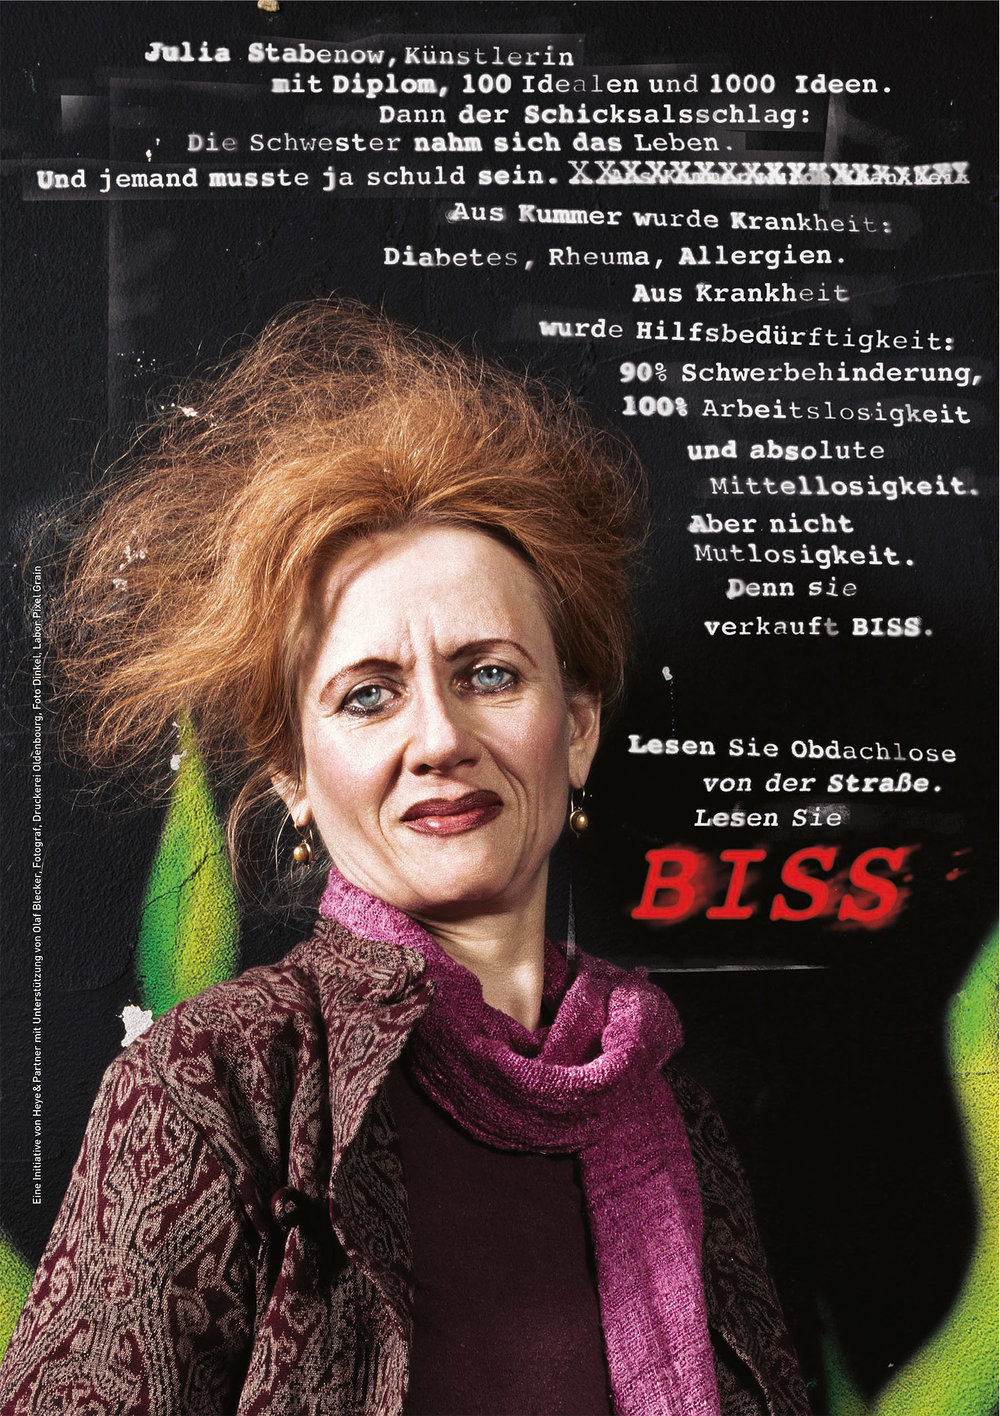 BISS 2